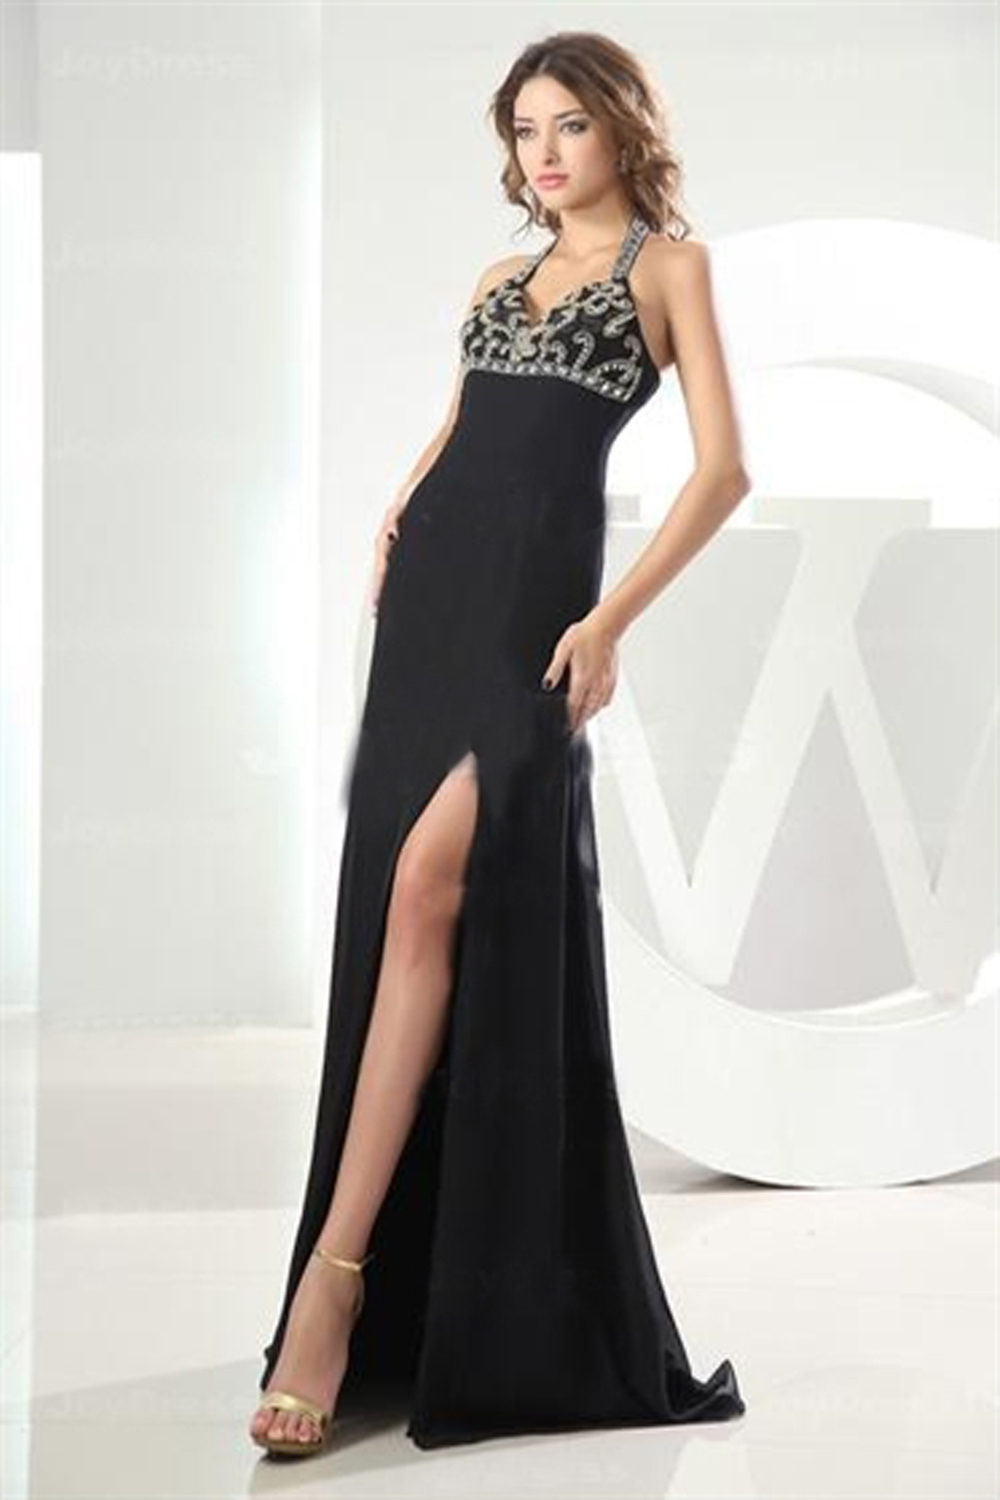 A-Line/Princess Halter Floor Length Chiffon Prom Dress with Beads